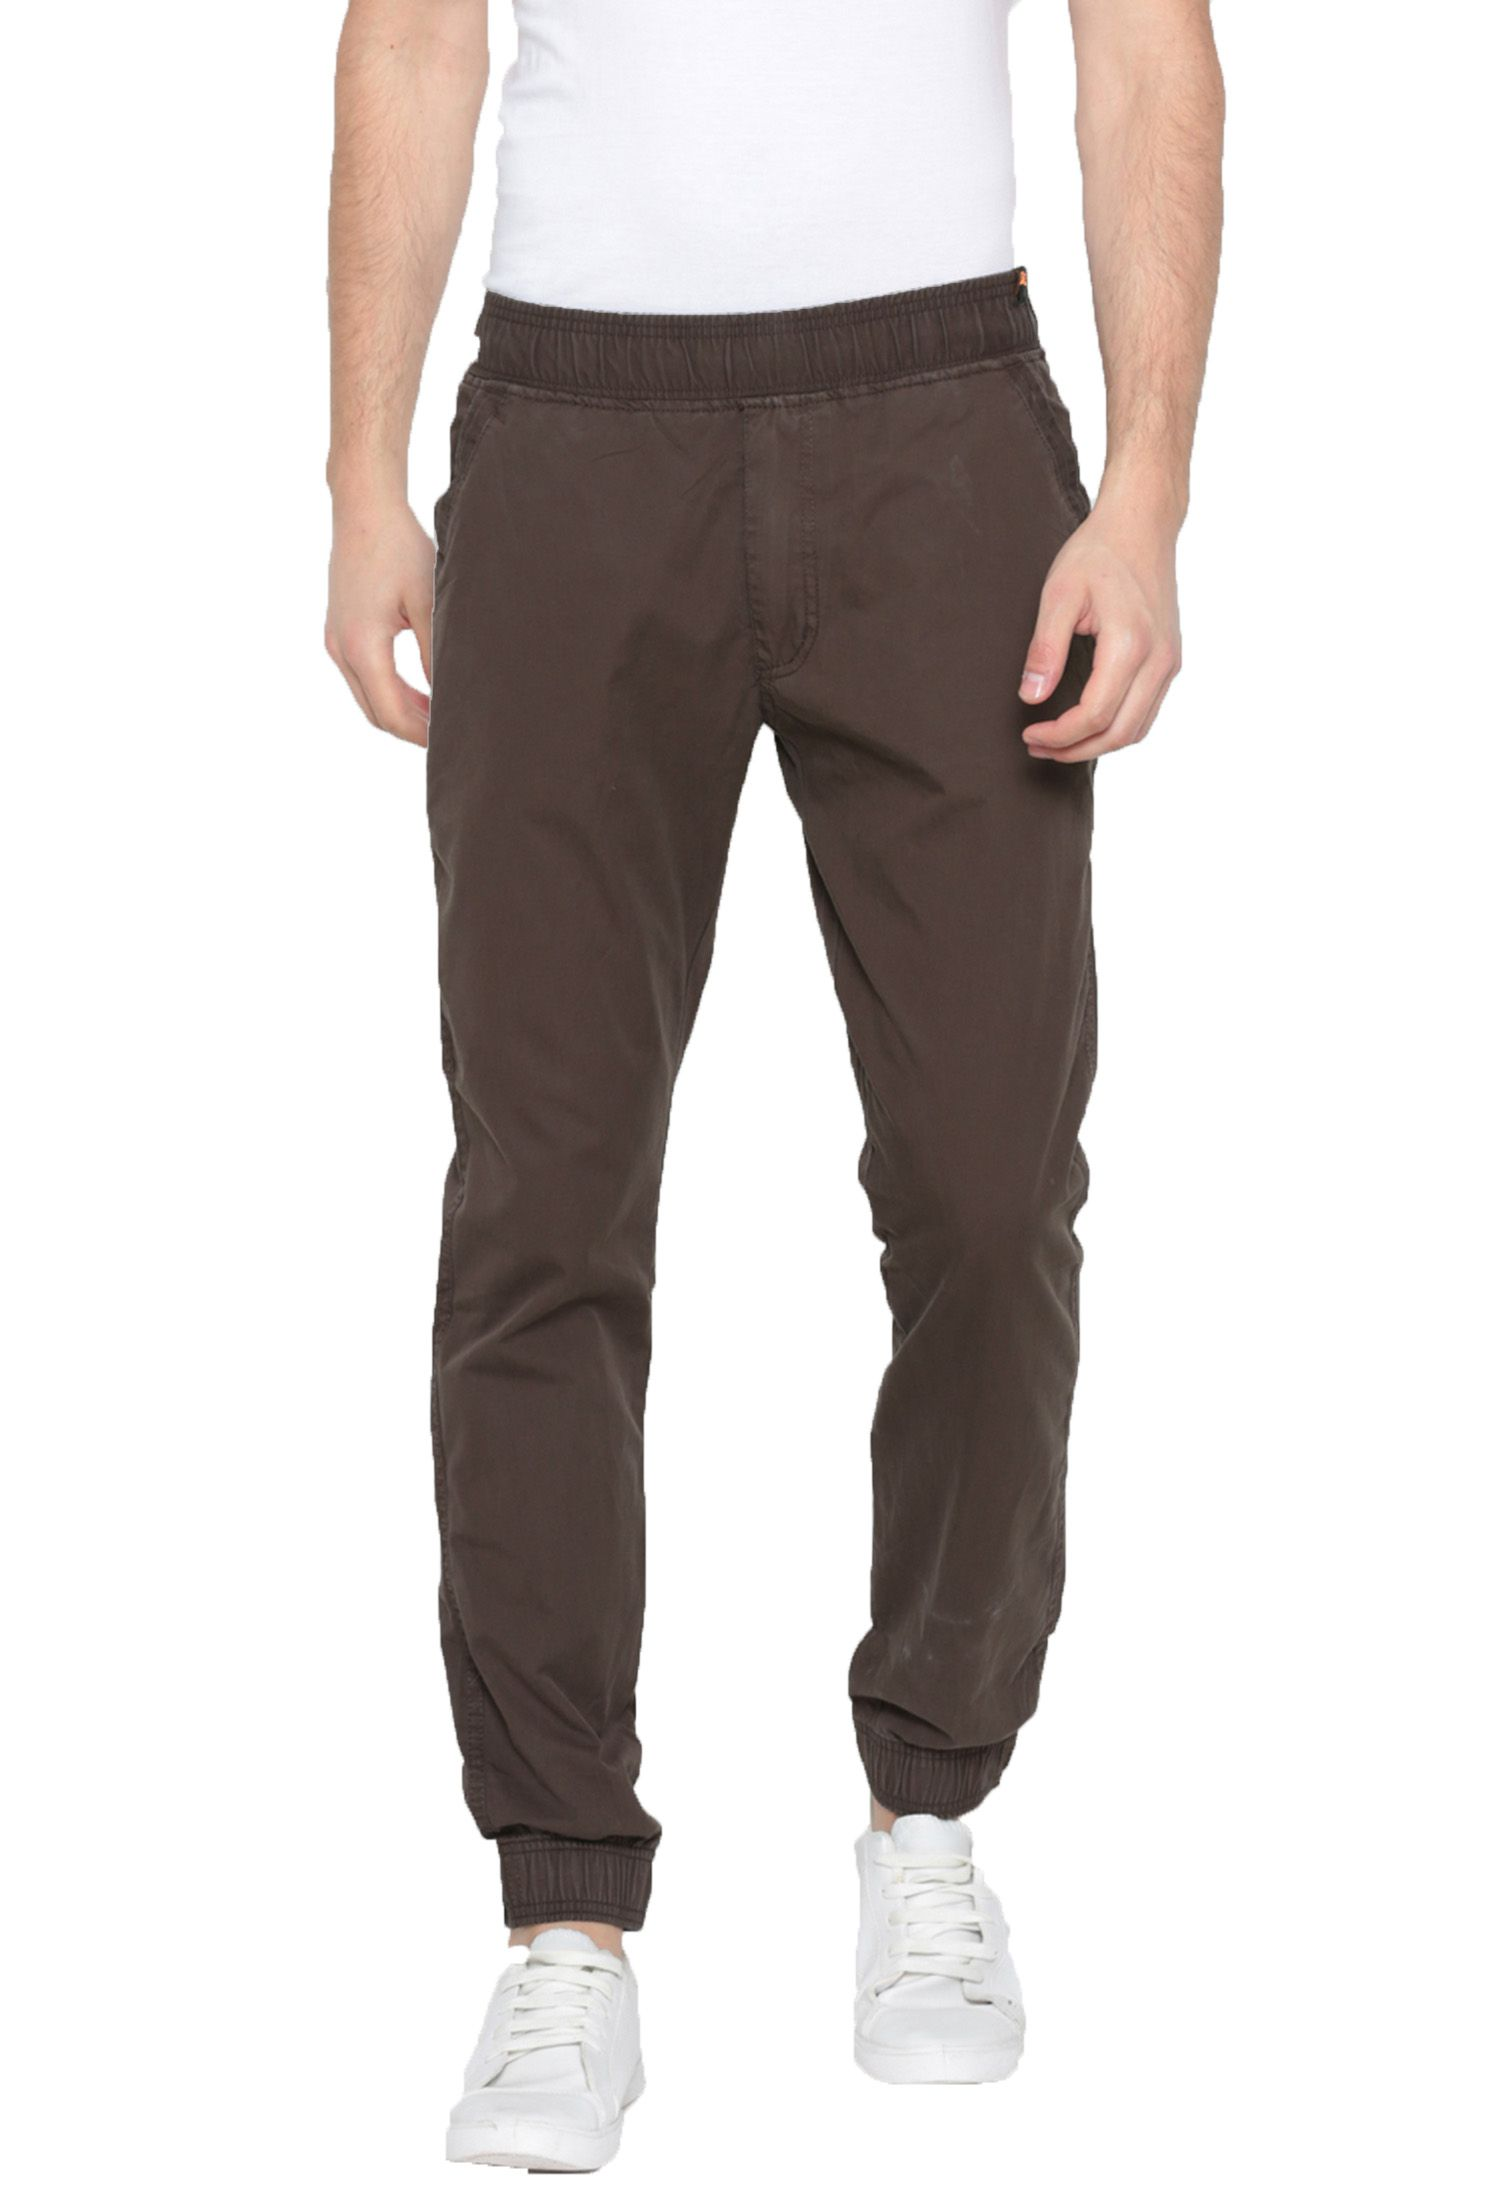 Sports 52 Wear Brown Slim -Fit Flat Joggers